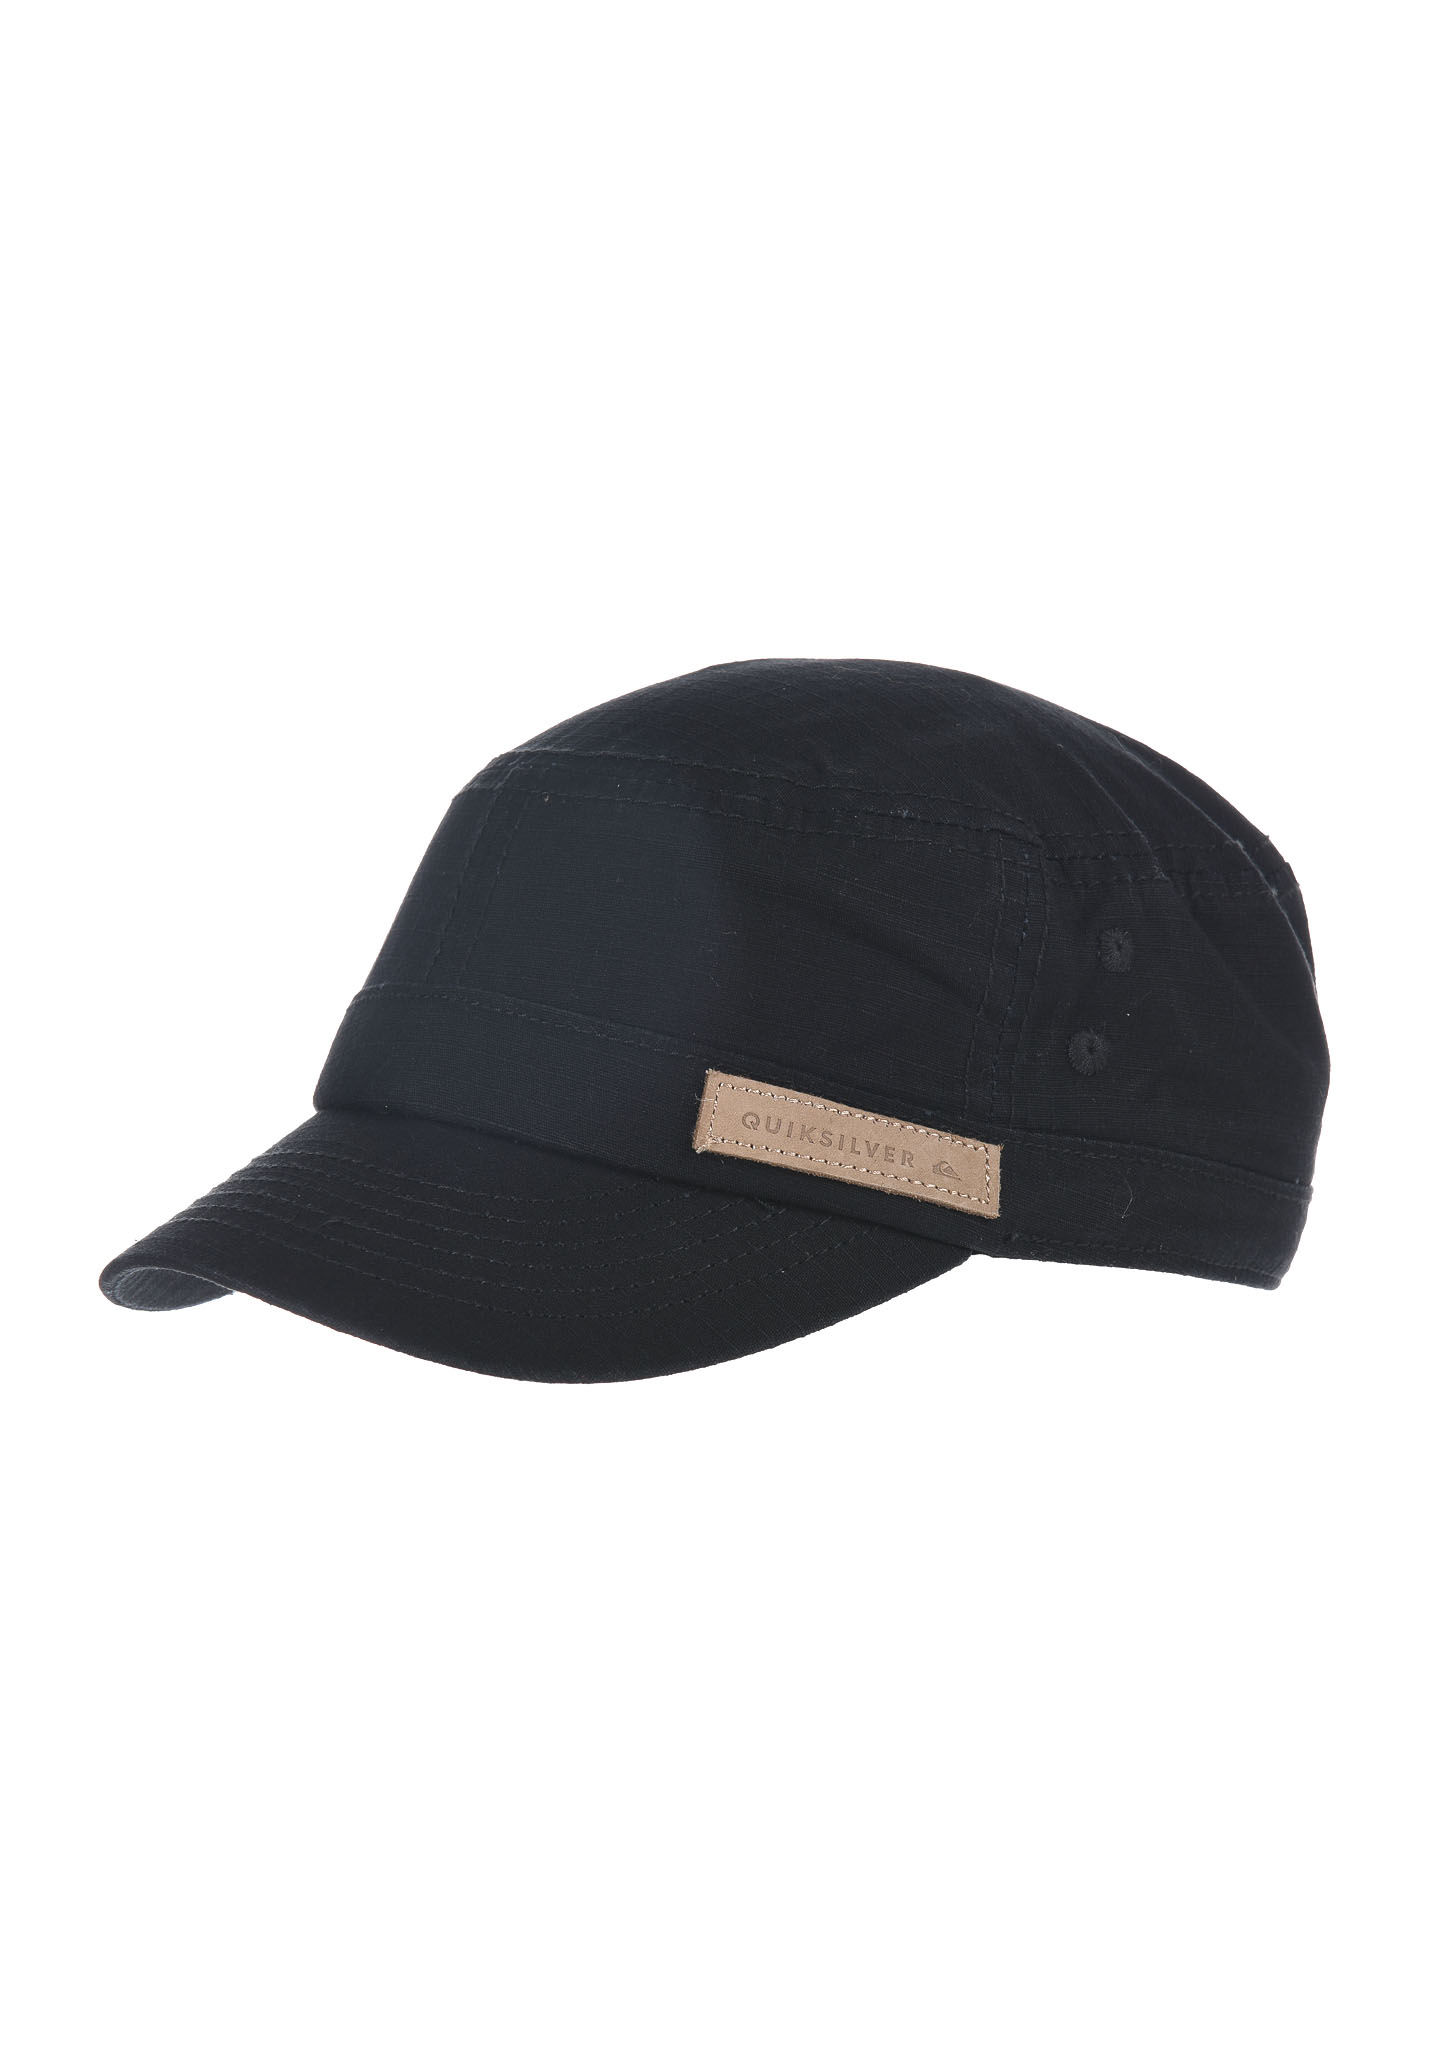 6f1ae71e29d Quiksilver Rengade 2 - Cap for Men - Black - Planet Sports